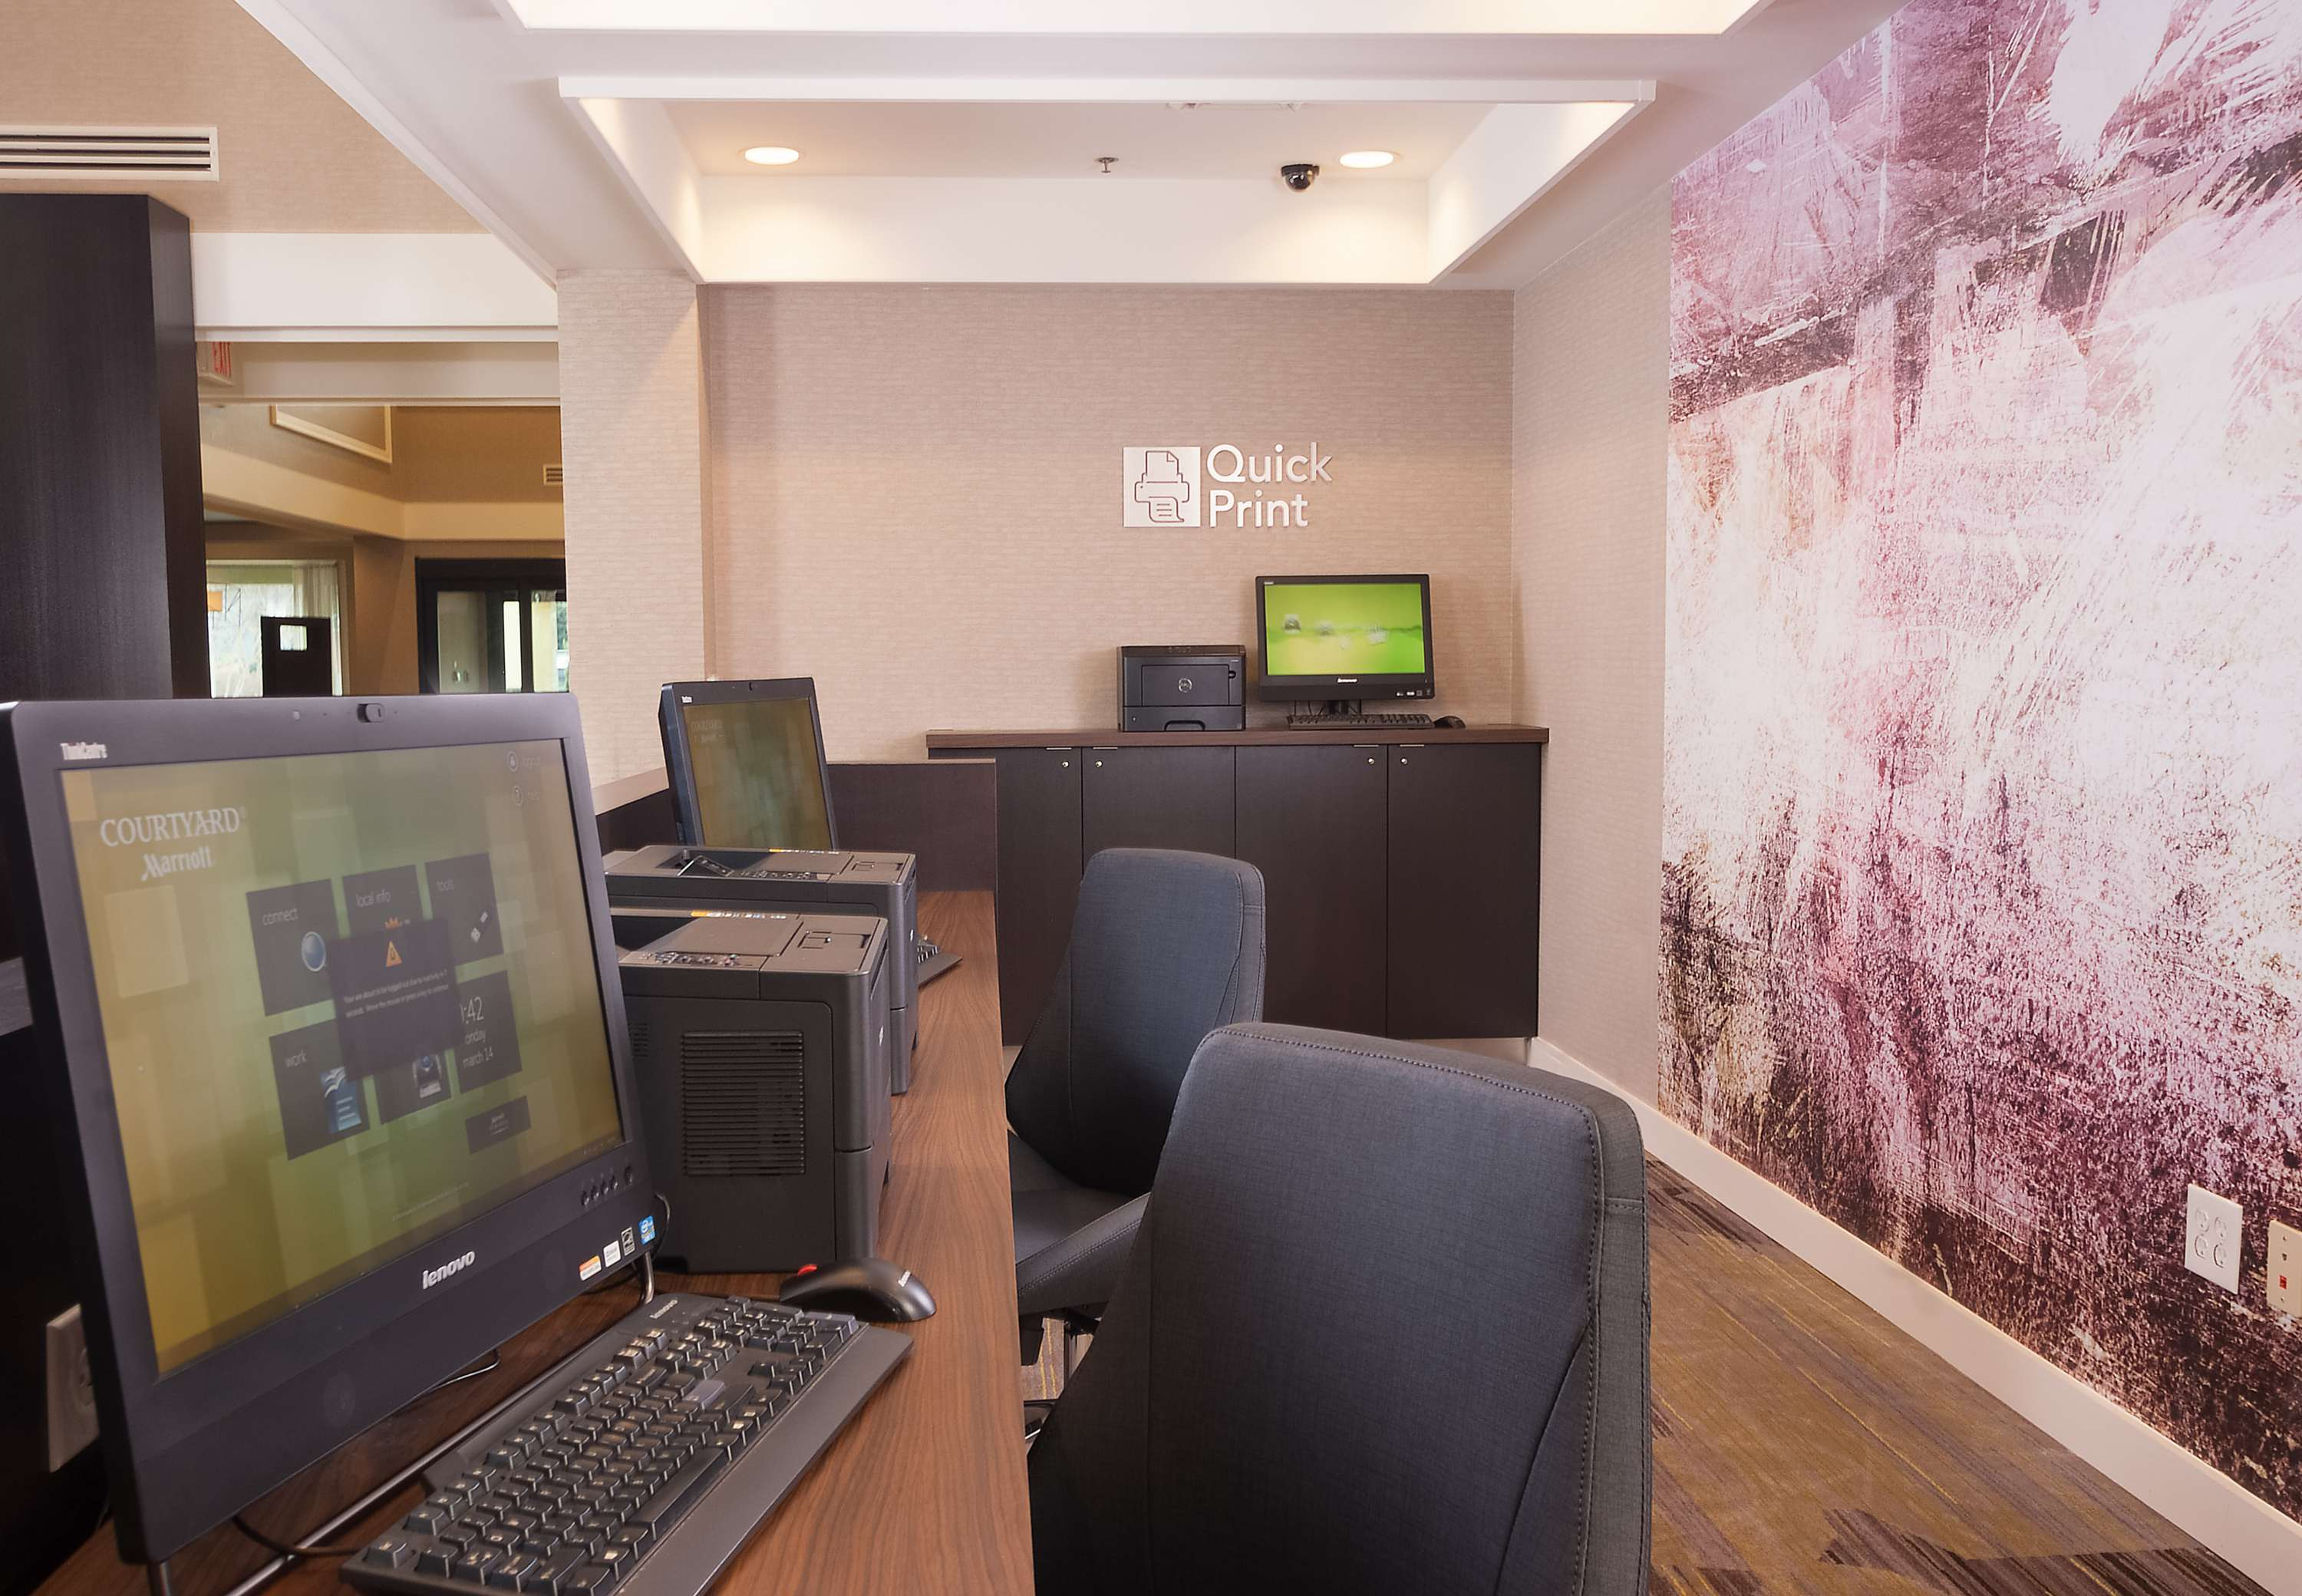 Courtyard by Marriott Greenville-Spartanburg Airport image 7